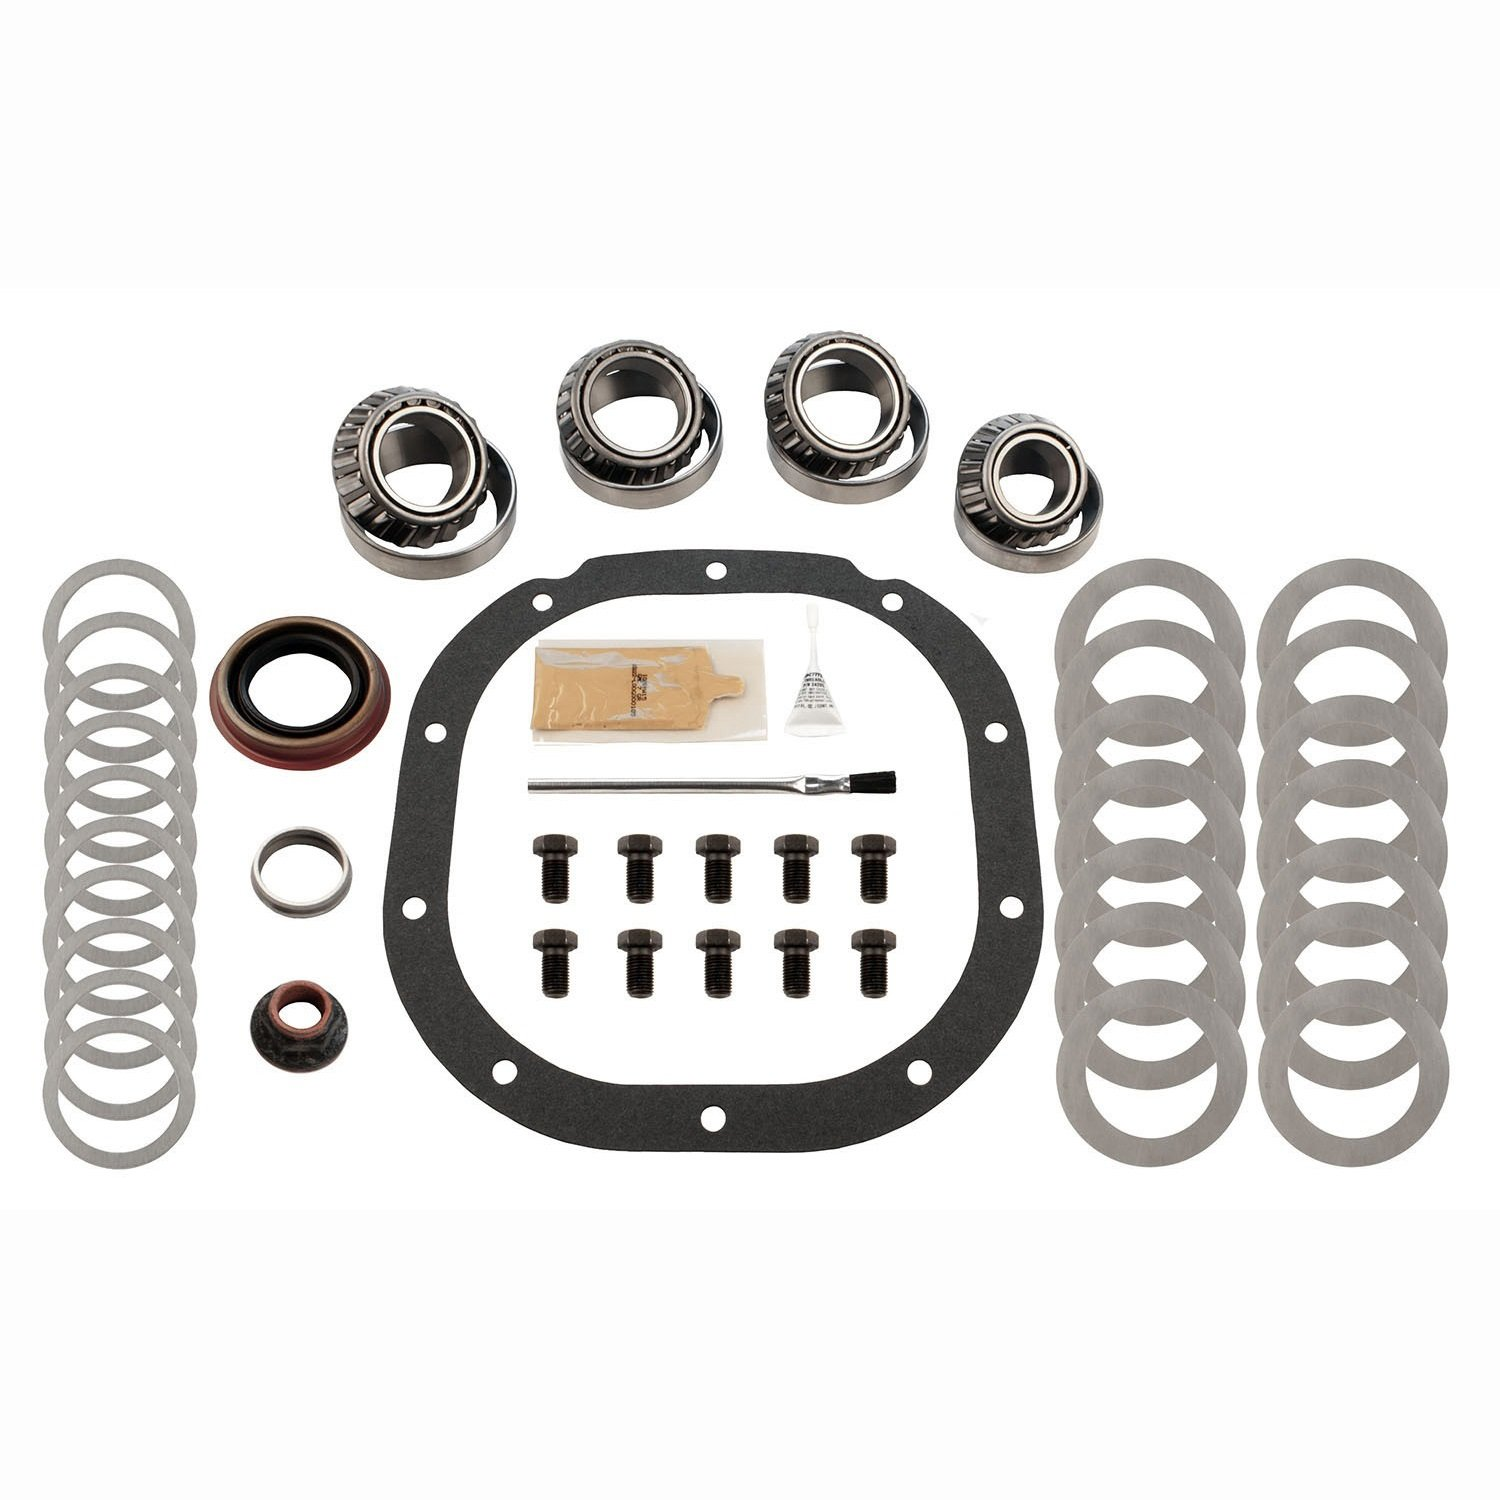 Richmond Gear 8310431 Kit Ford 8.8 83-1043-1